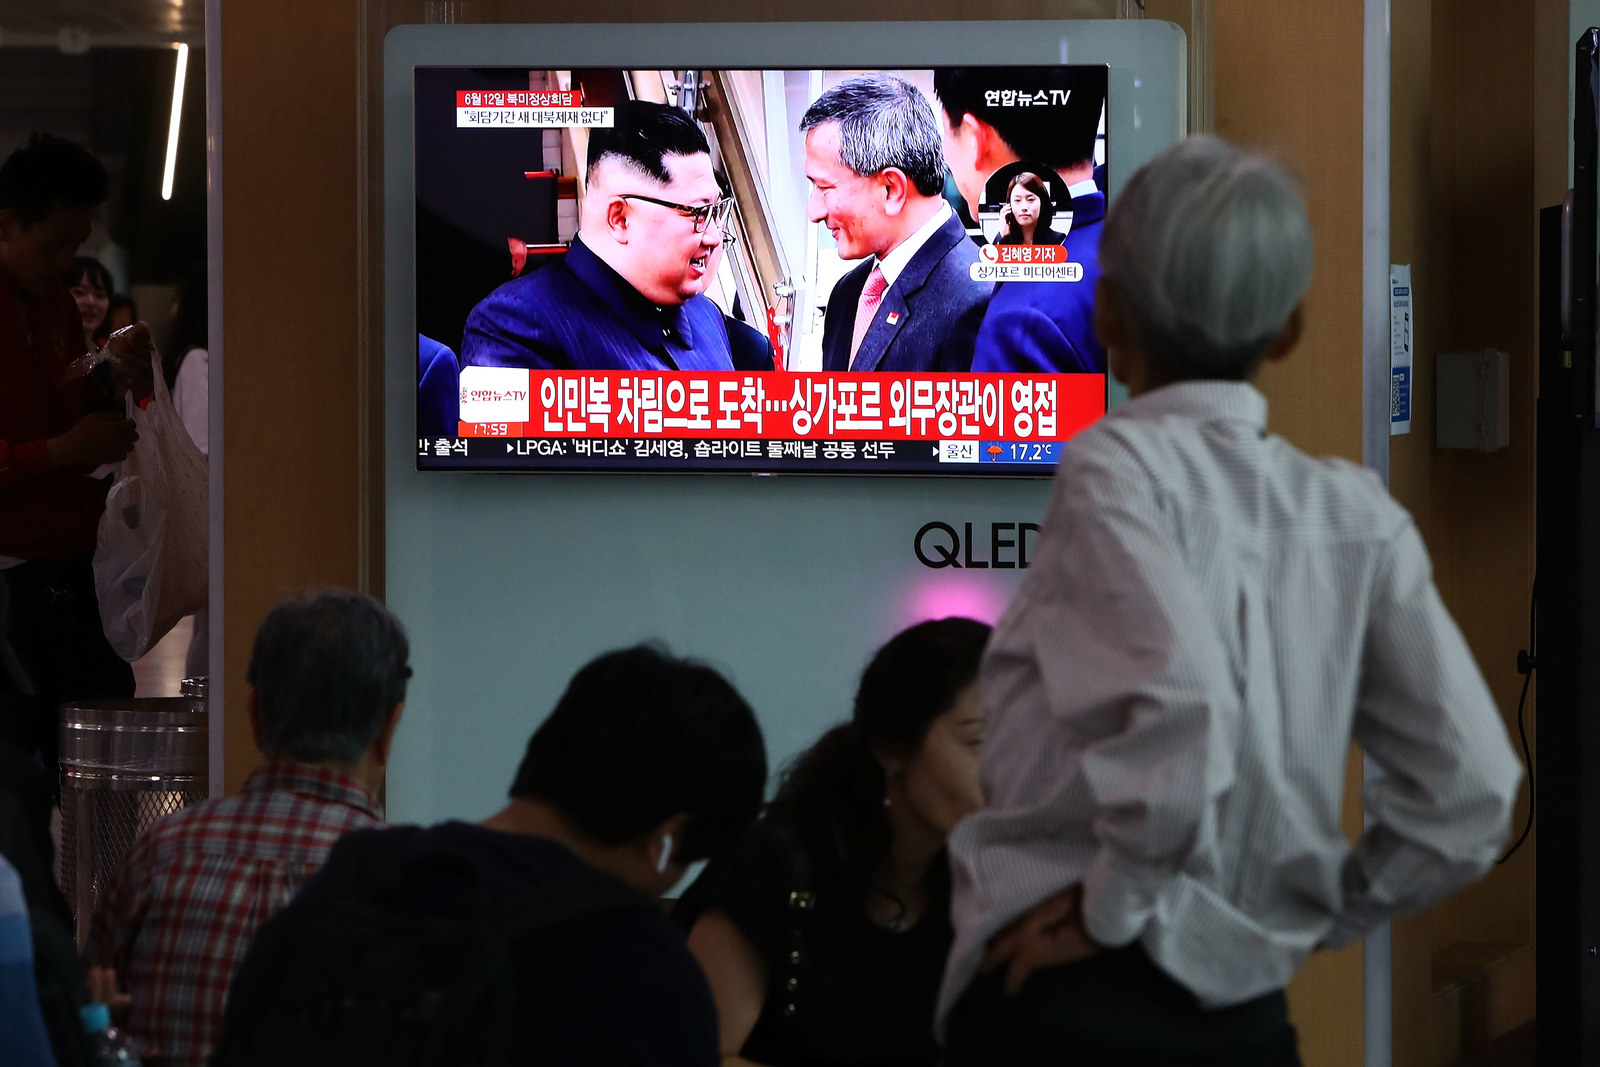 South Koreans watch news coverage on a screen at the Seoul Railway Station as North Korean leader Kim Jong Un arrives in Singapore.